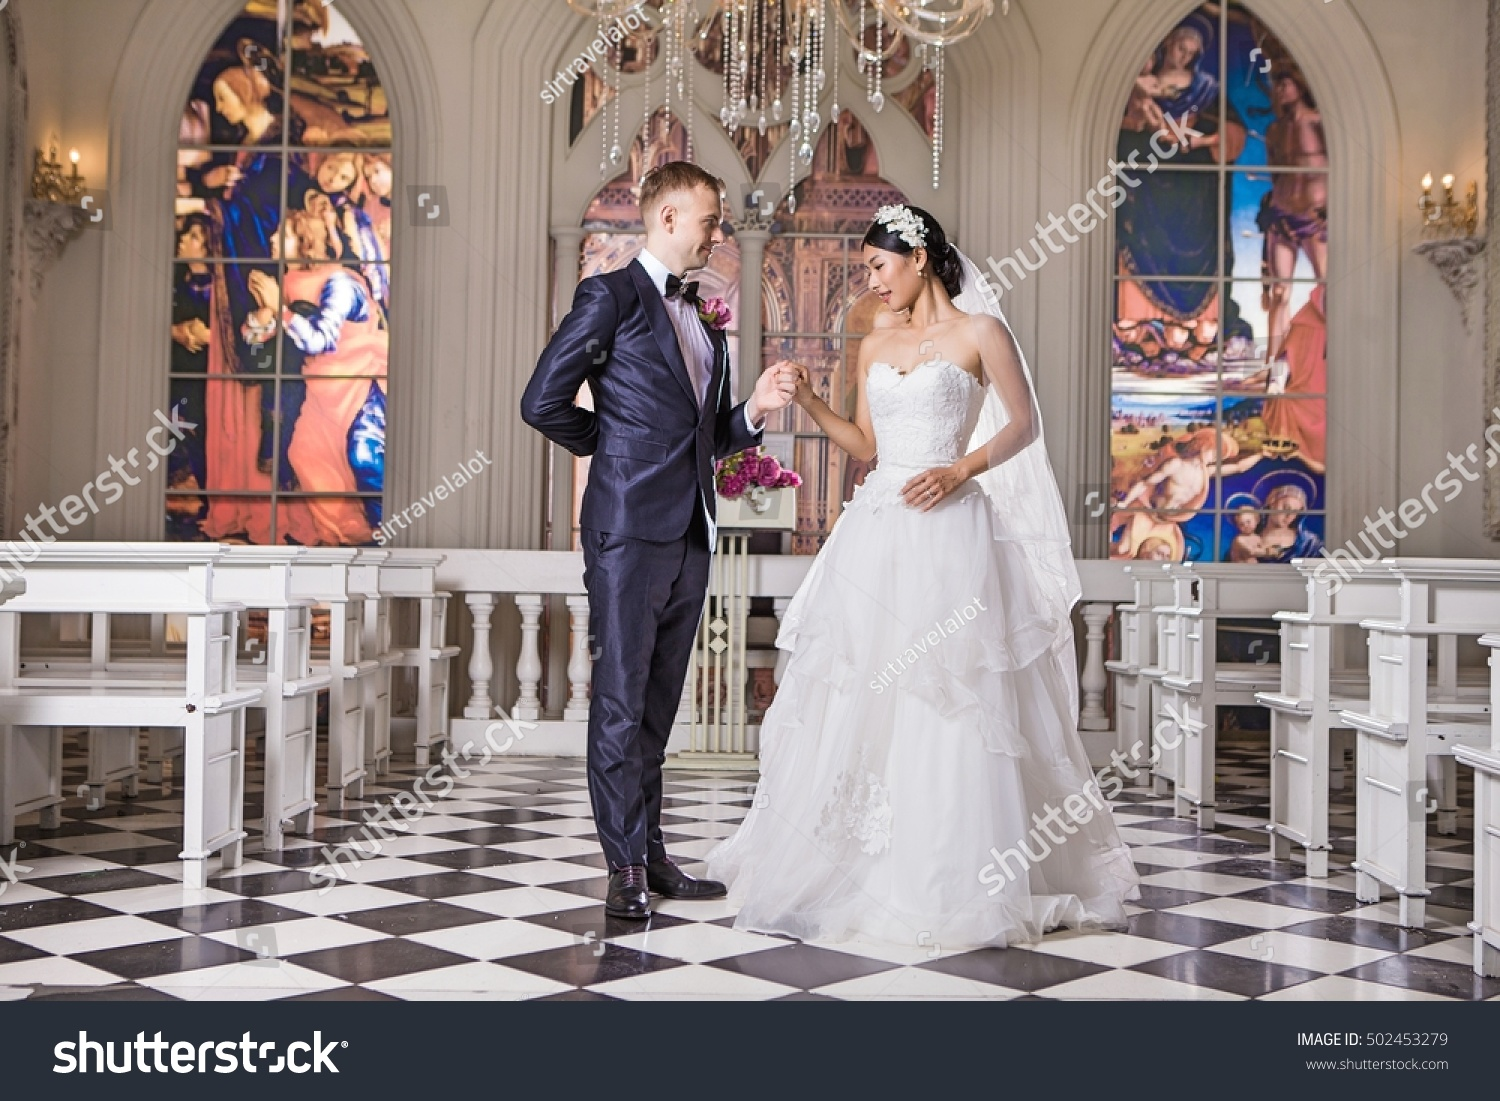 8389196f13f Side view of romantic wedding couple looking at each other in church